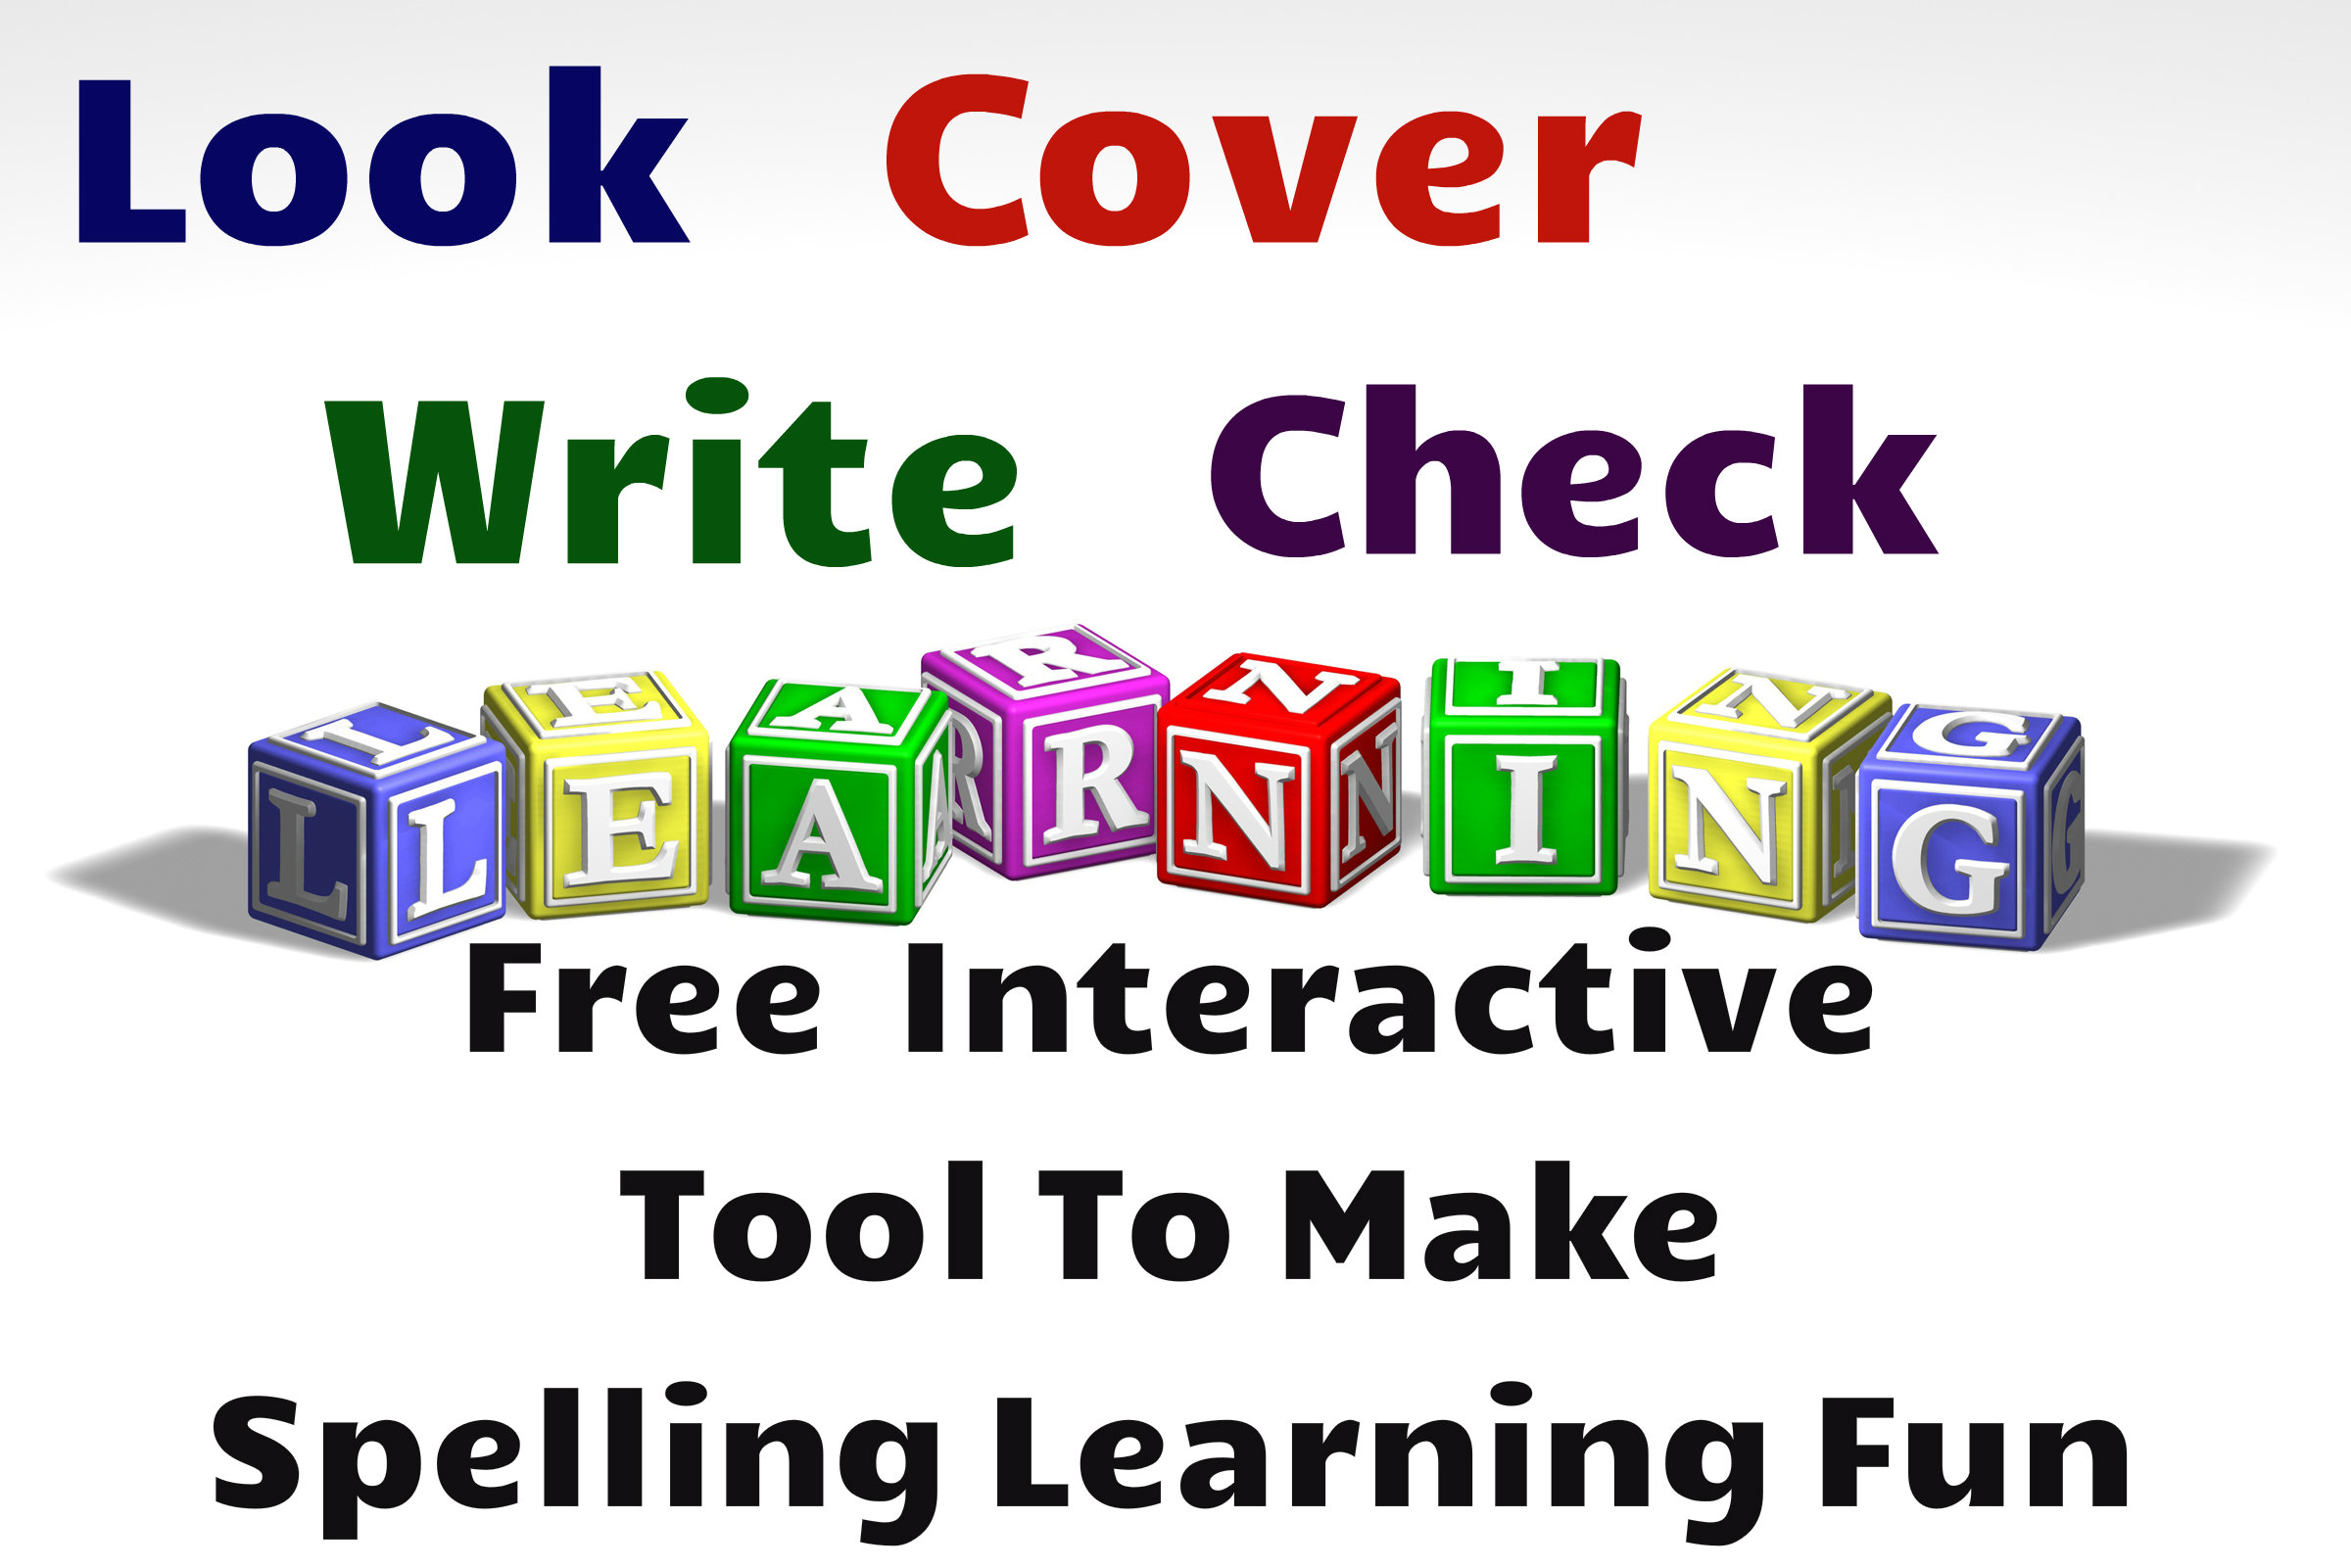 Free Spelling Learning Tool